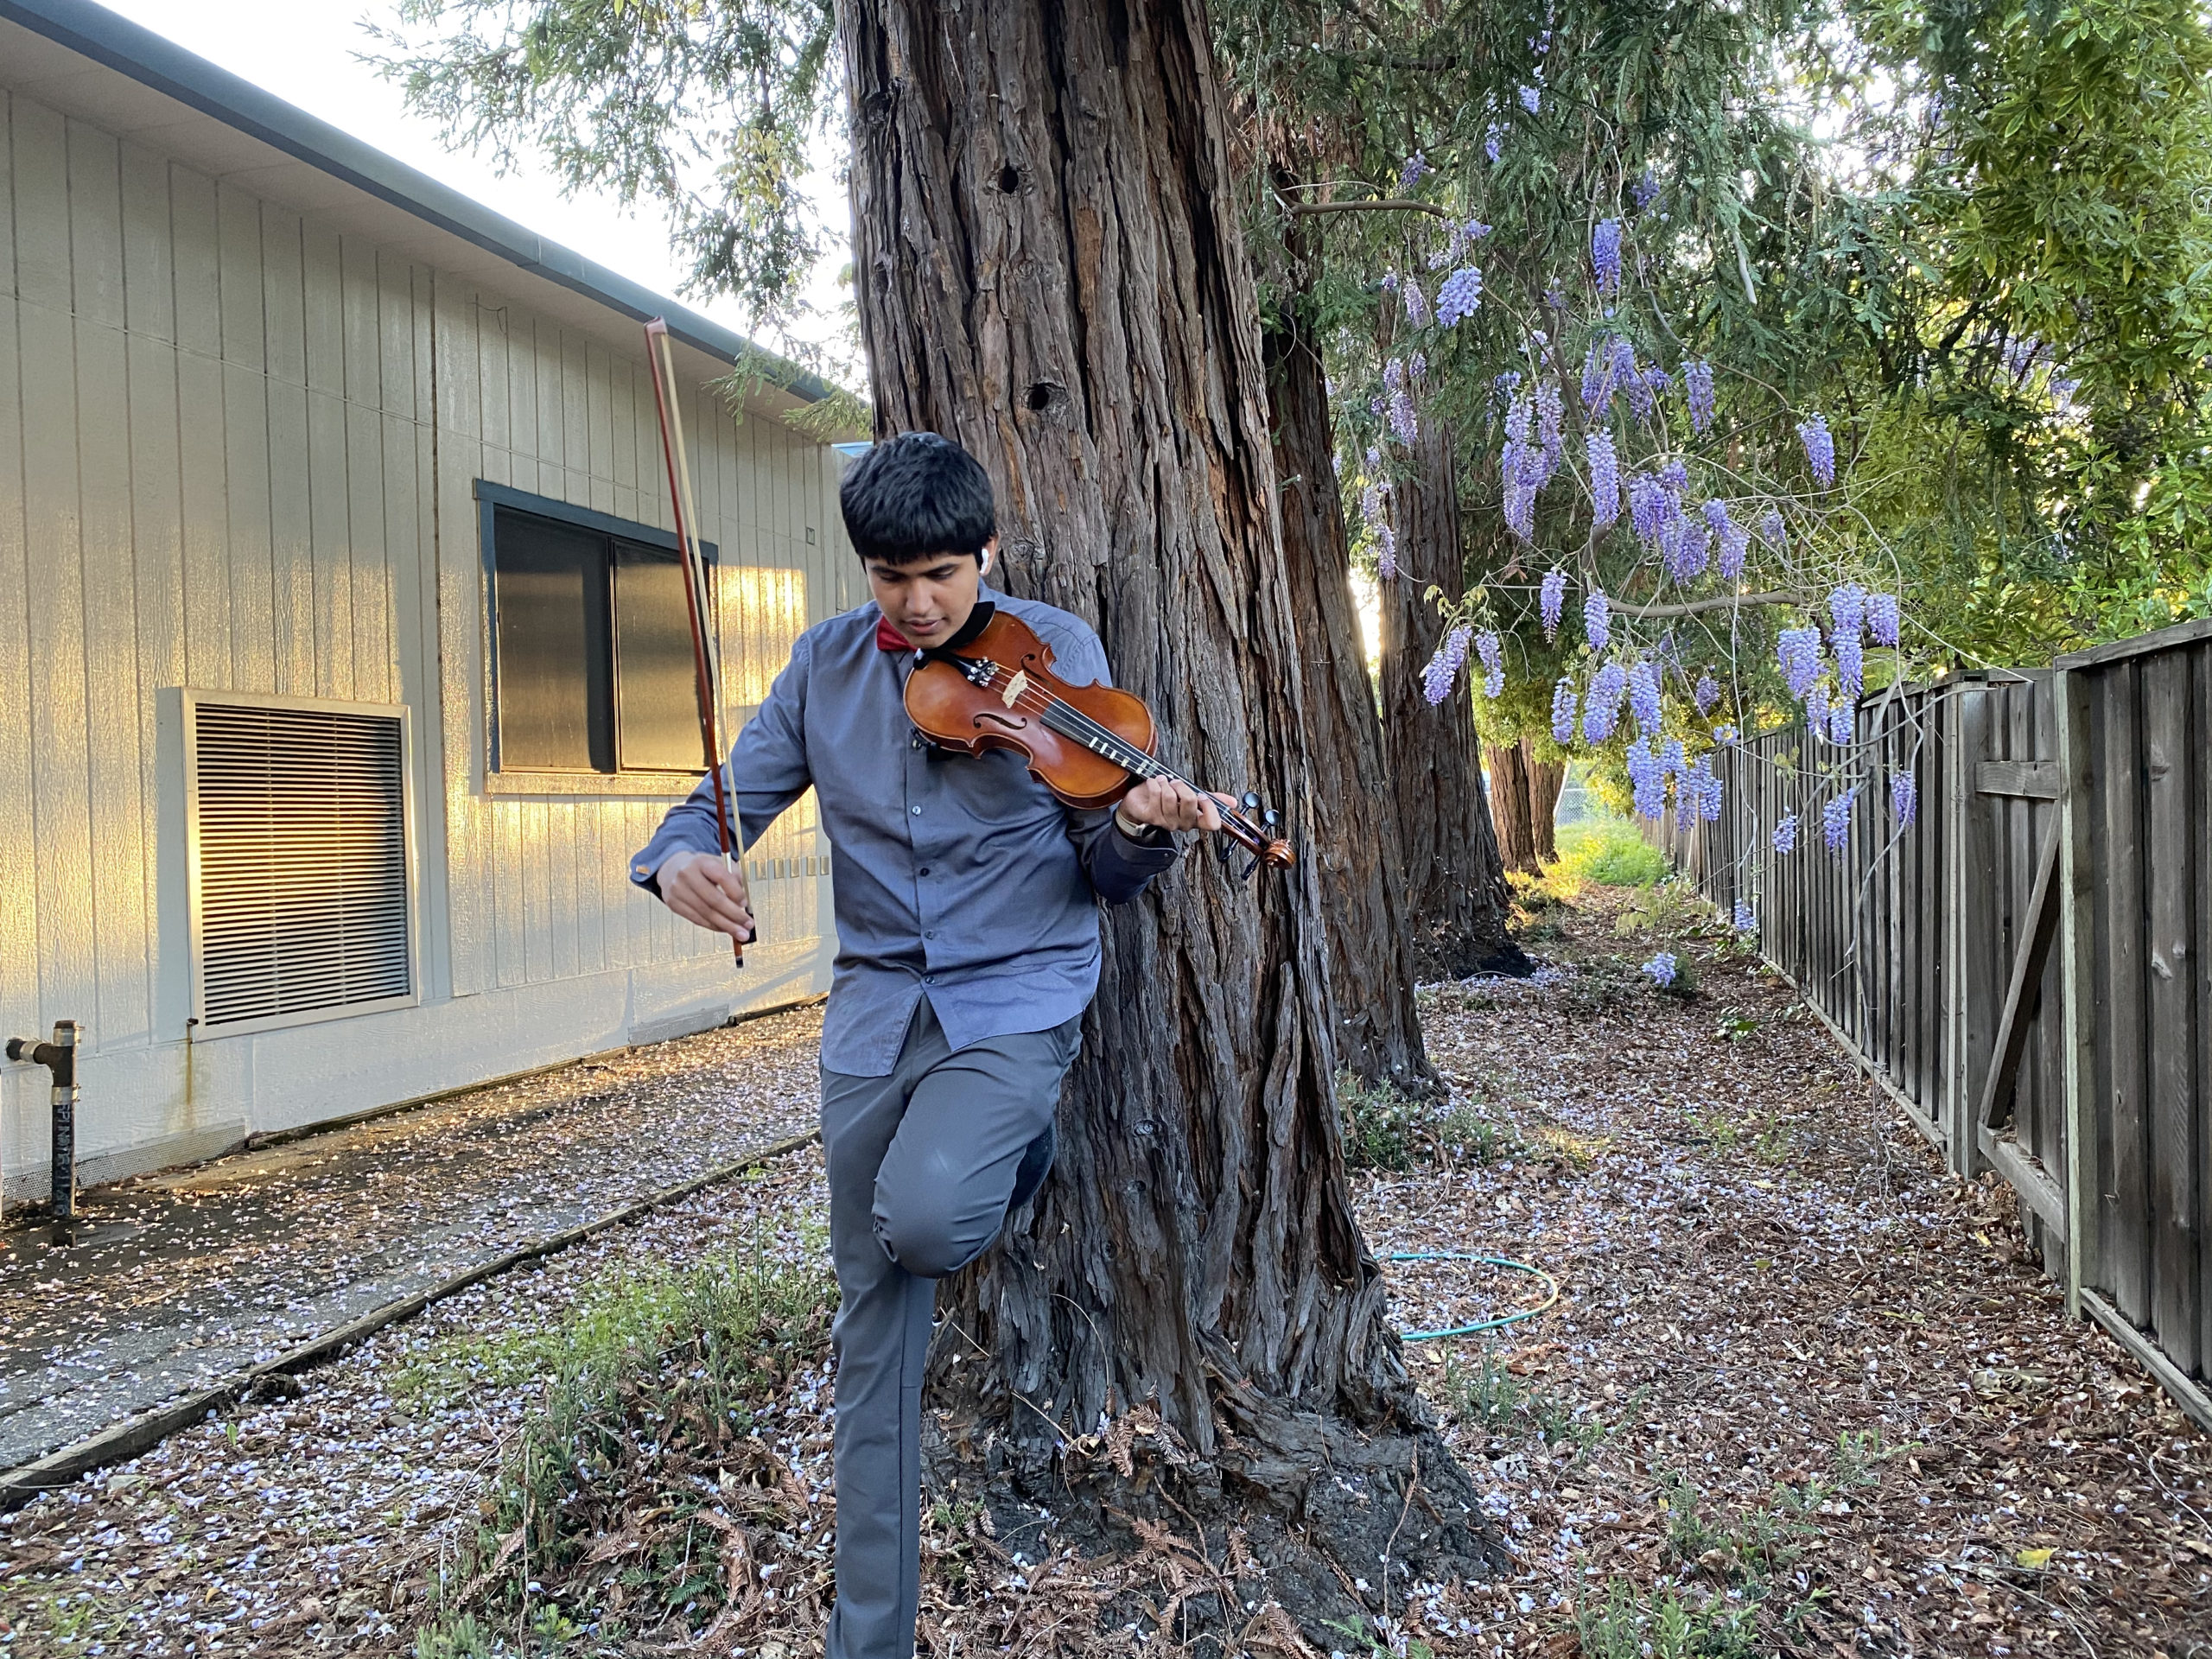 Vardhan Agrawal playing the violin while recording a cover and music video of Schindler's List